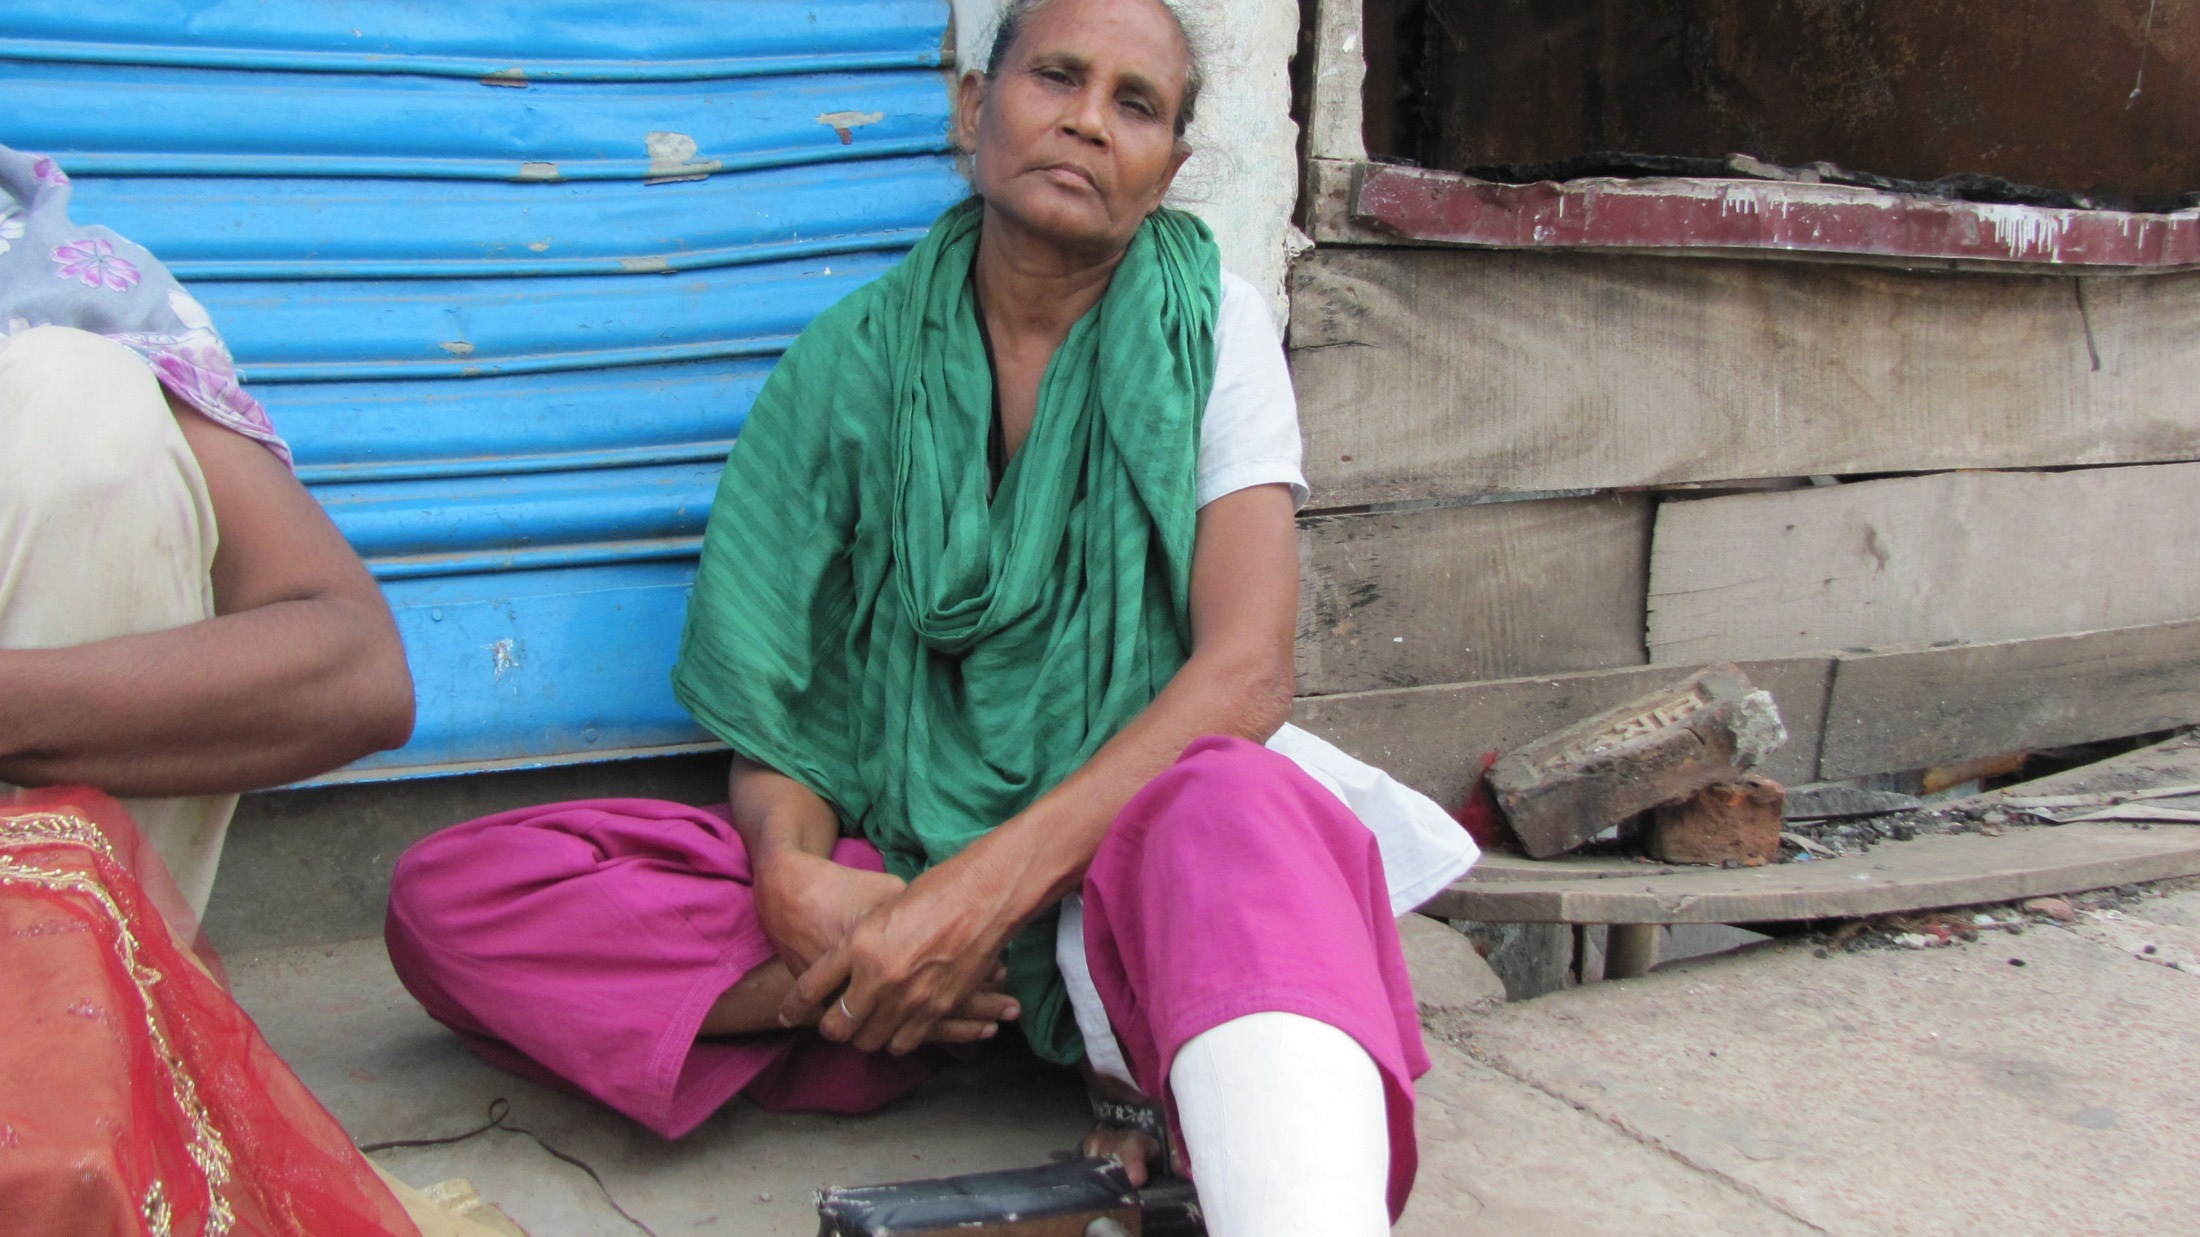 Anwari Begum, 50, received injury allegedly by police baton. The photo was taken on July 14, one month after clashes between Bihari residents and Bengali that burned several houses and left 10 dead.